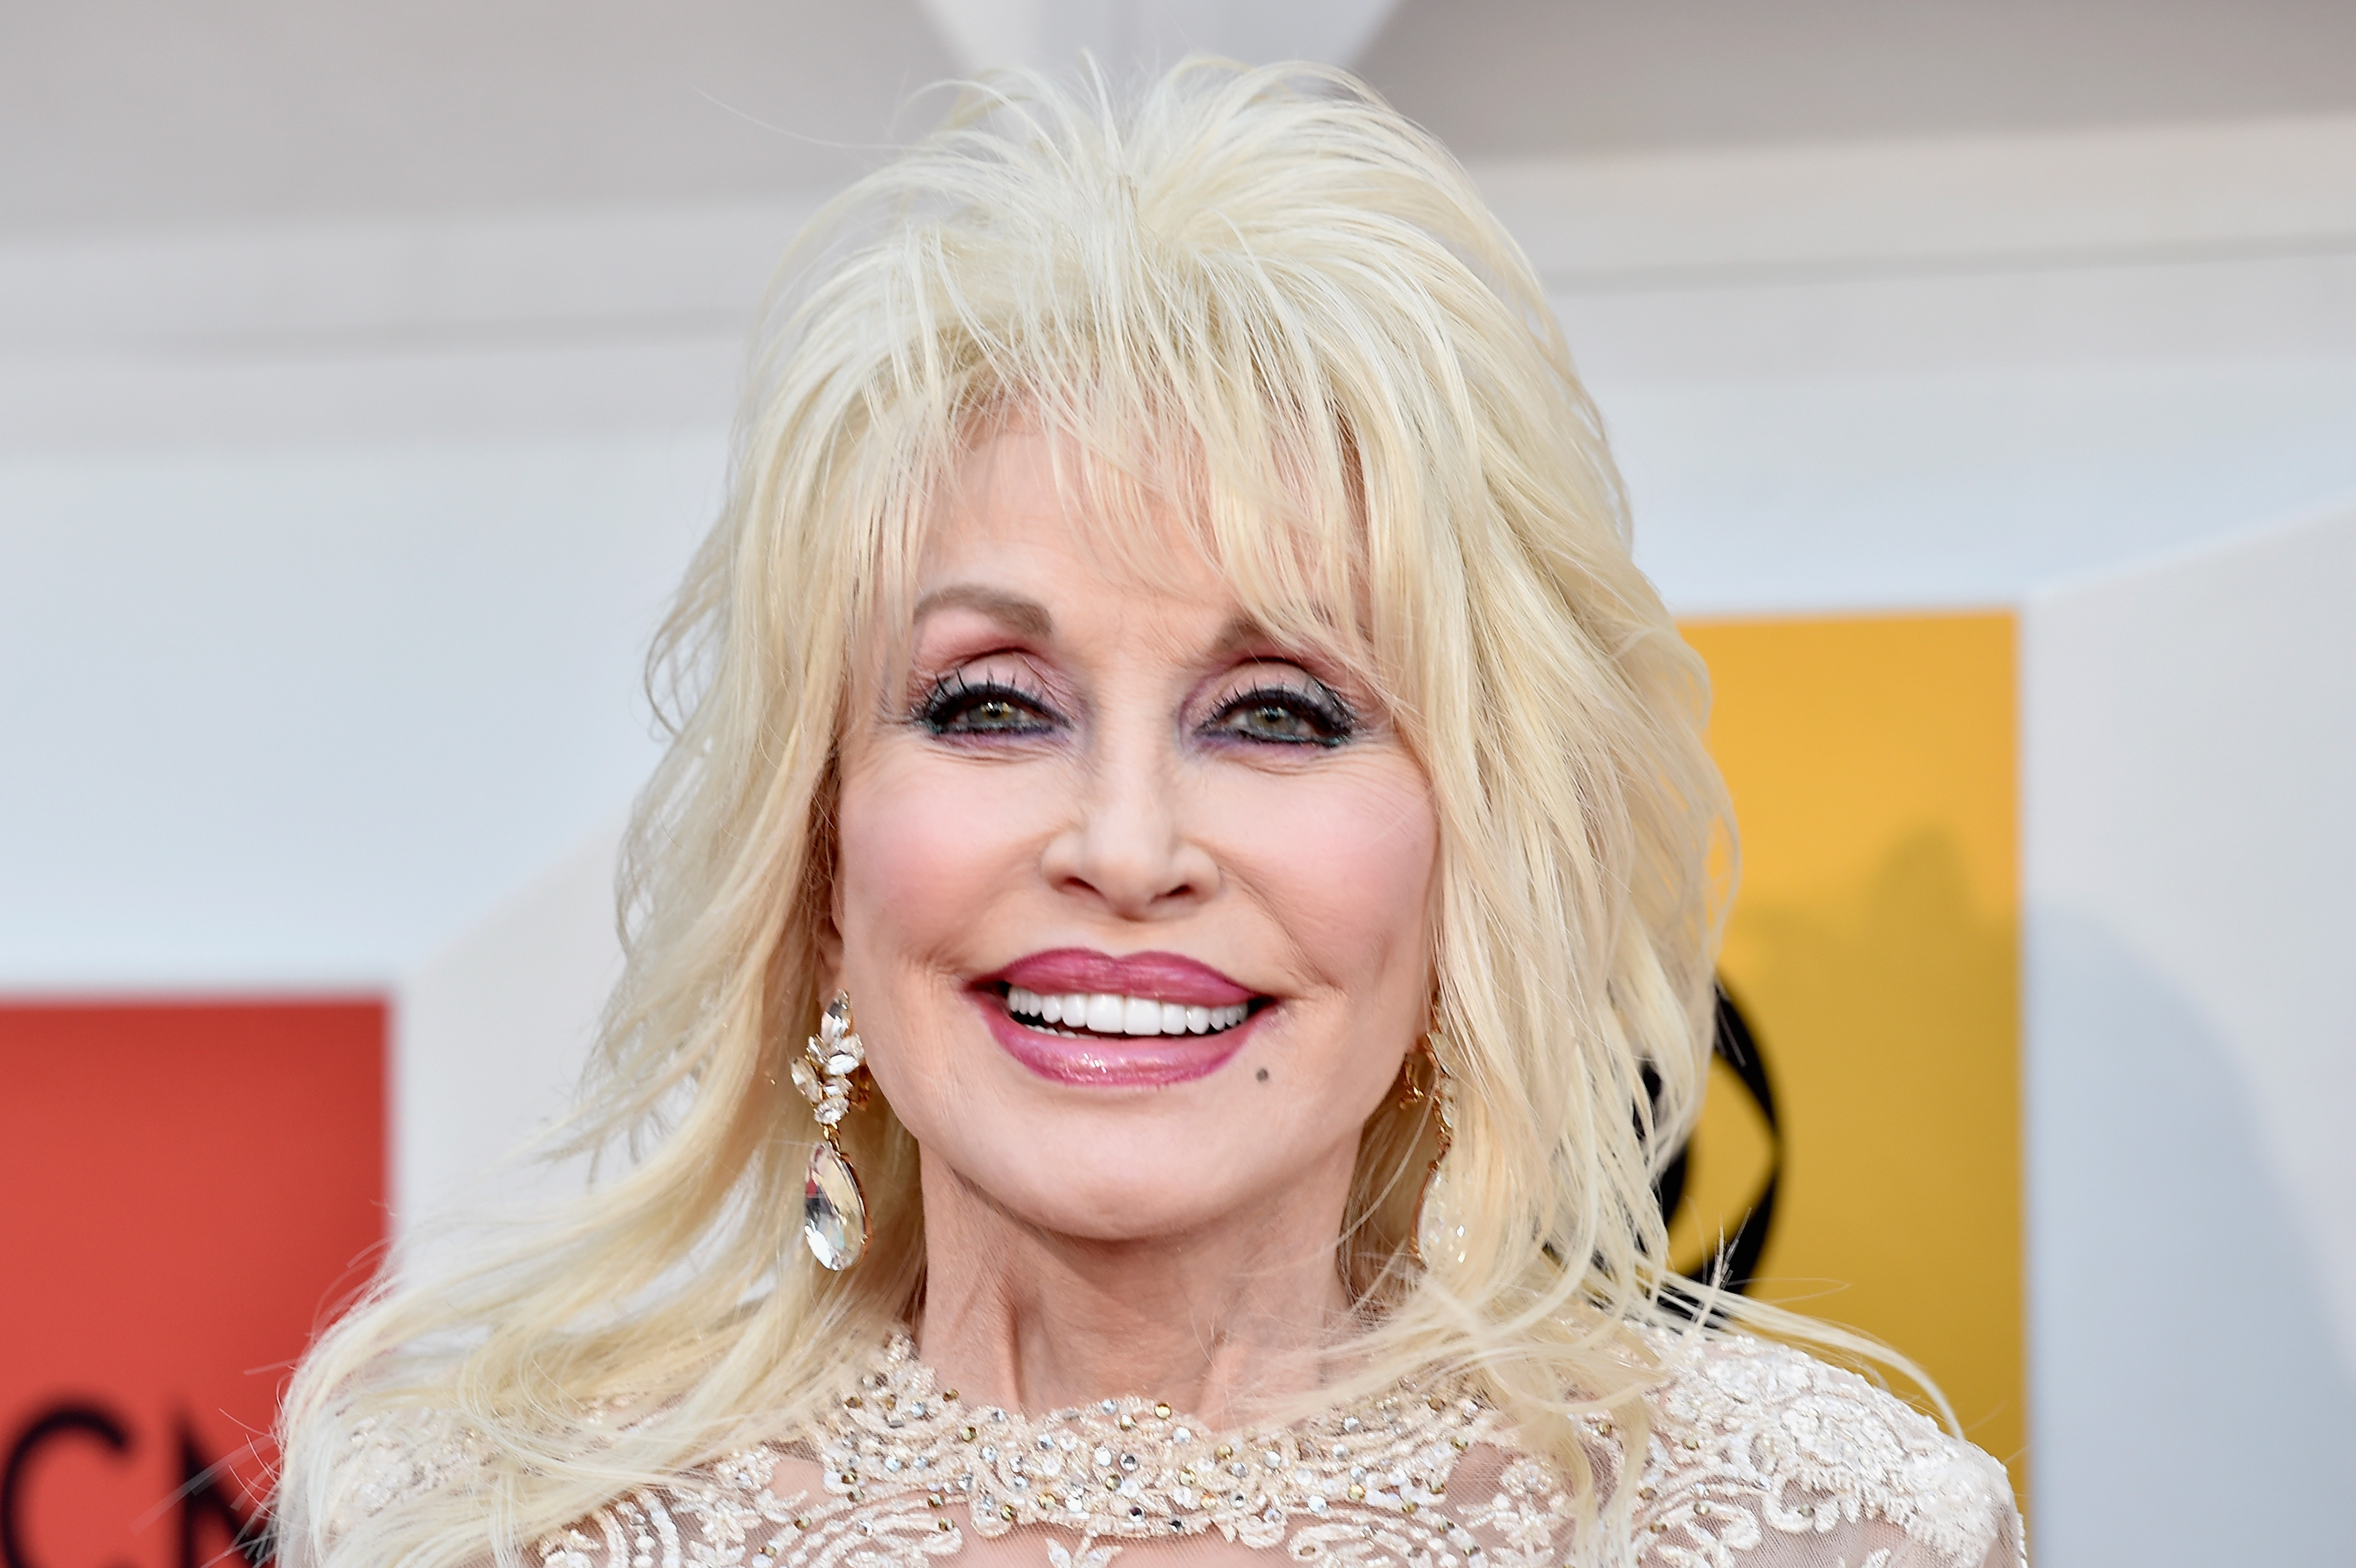 Dolly Parton's Ice Cream Selling For $1000 Per Pint On Ebay